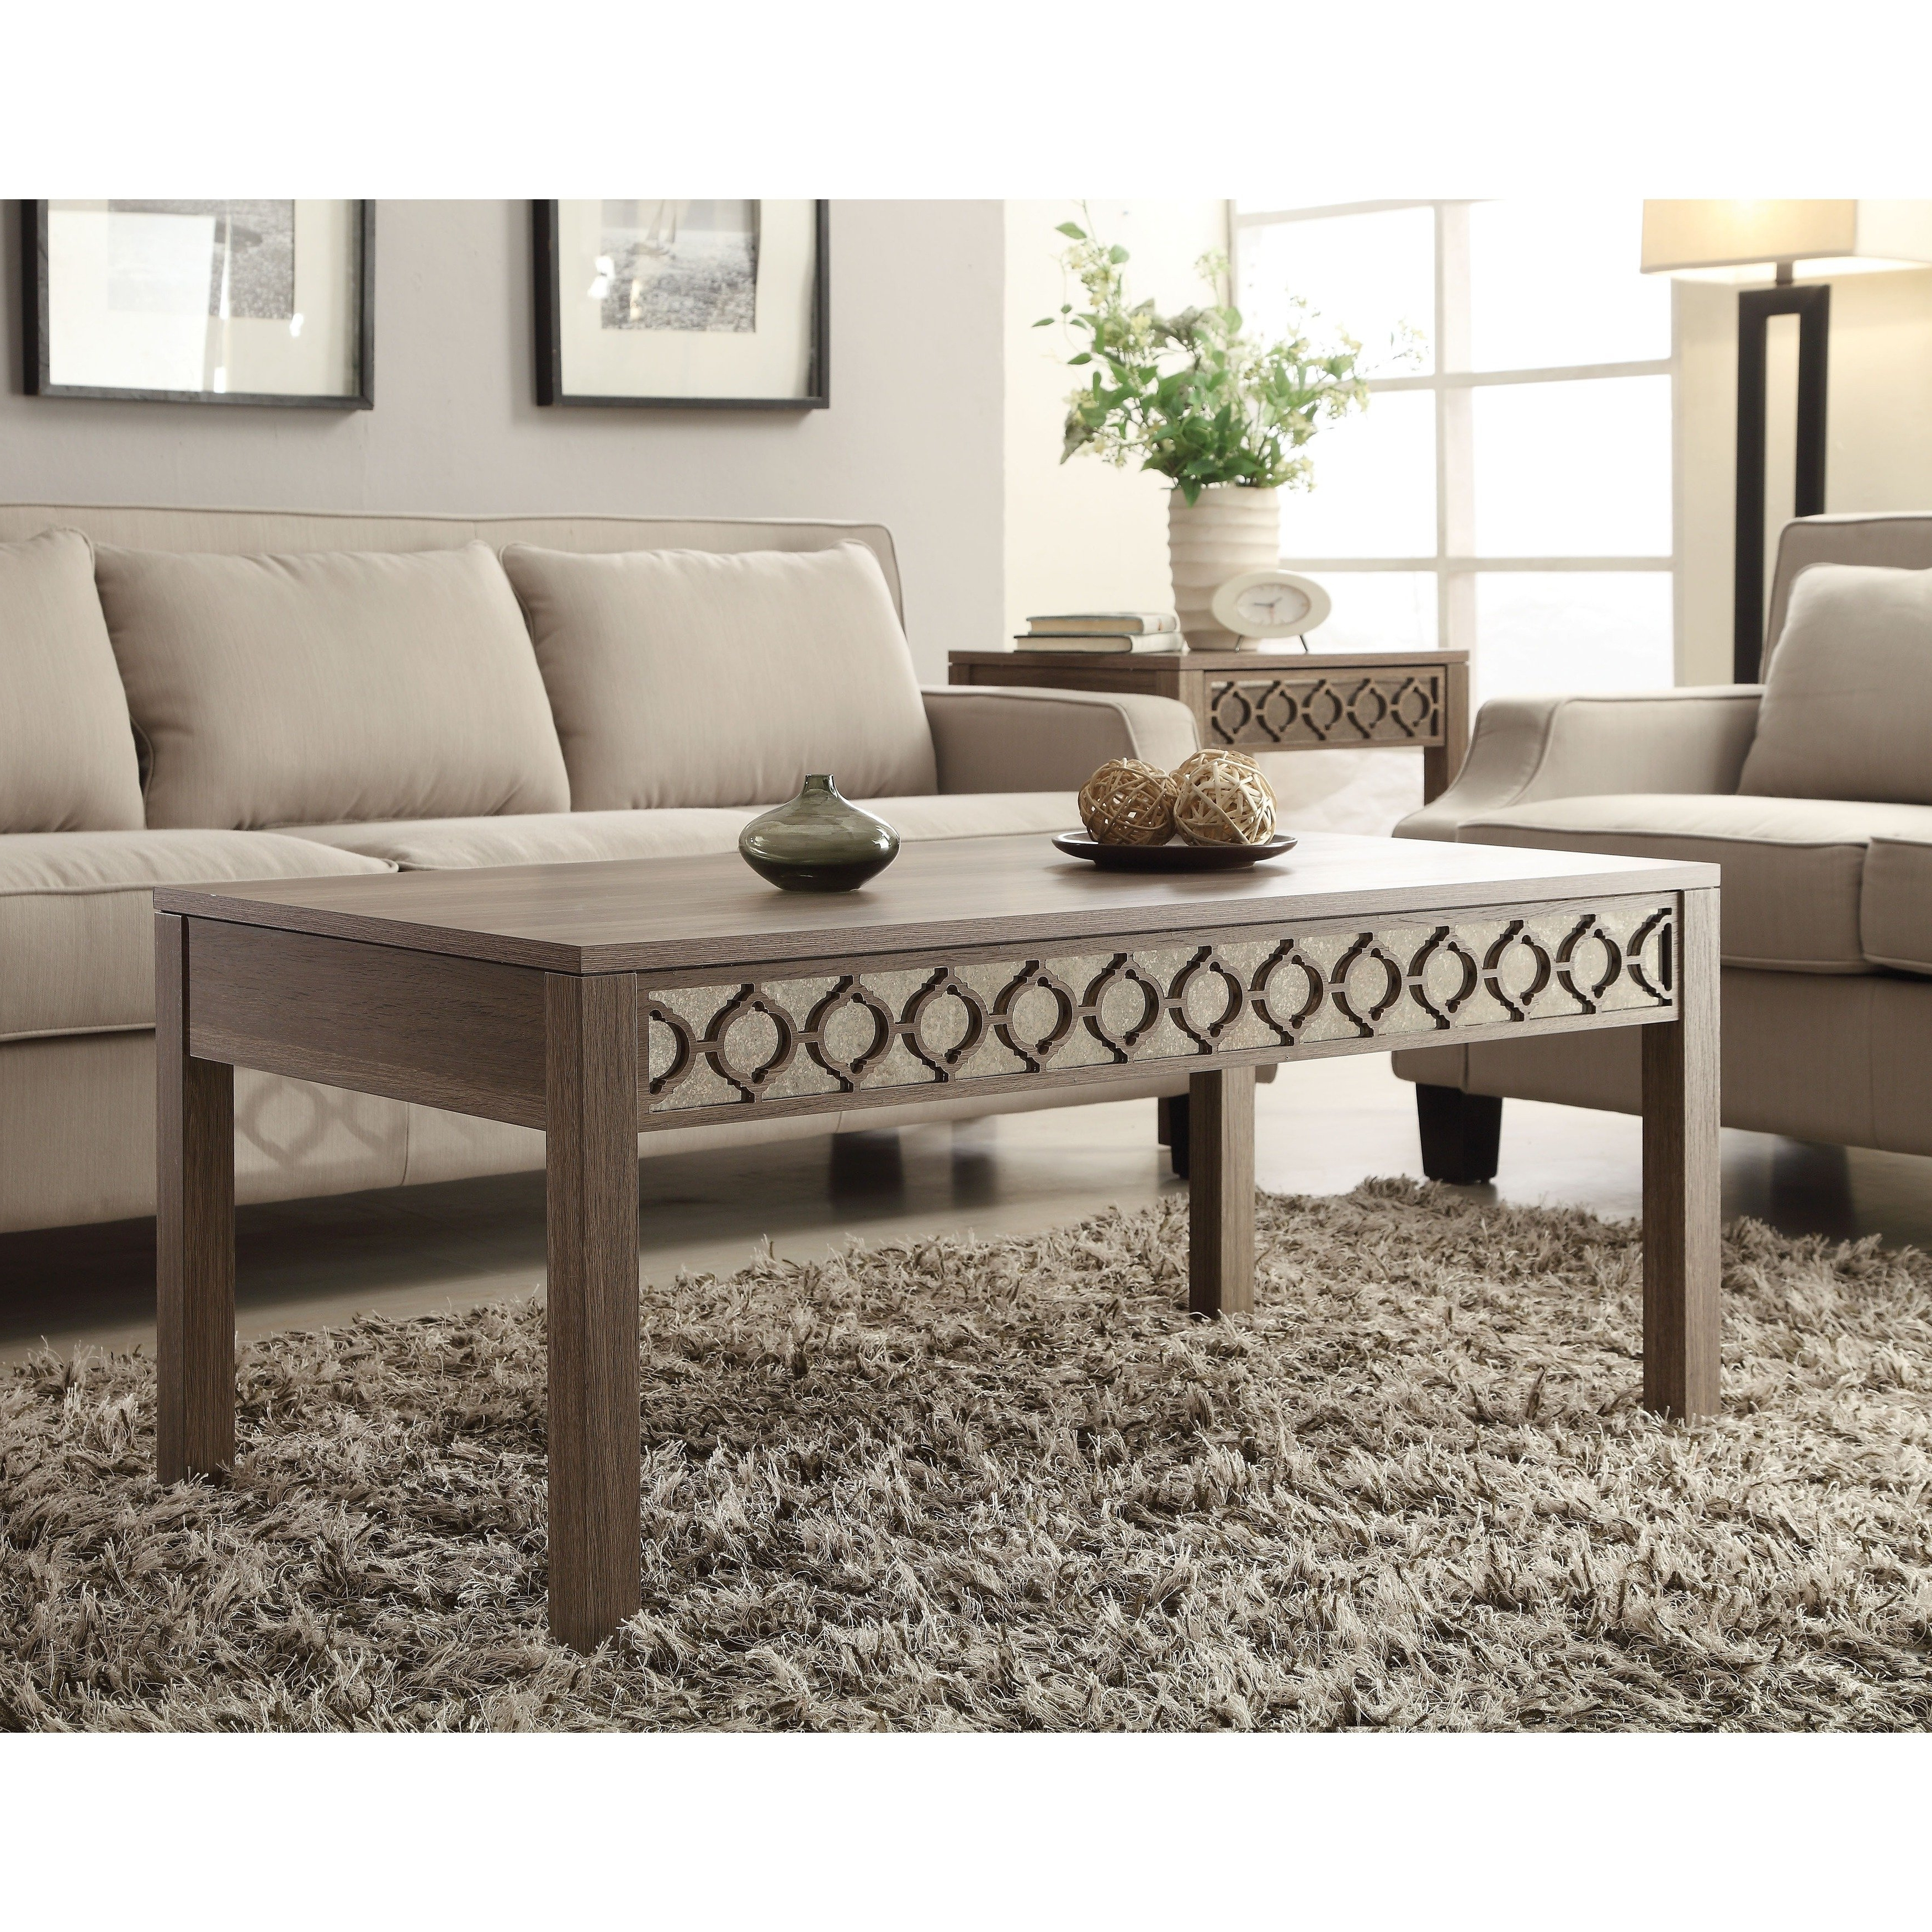 Shop Helena Sun Bleached Oak Coffee Table – Free Shipping Today With Preferred Lassen Square Lift Top Cocktail Tables (View 15 of 20)